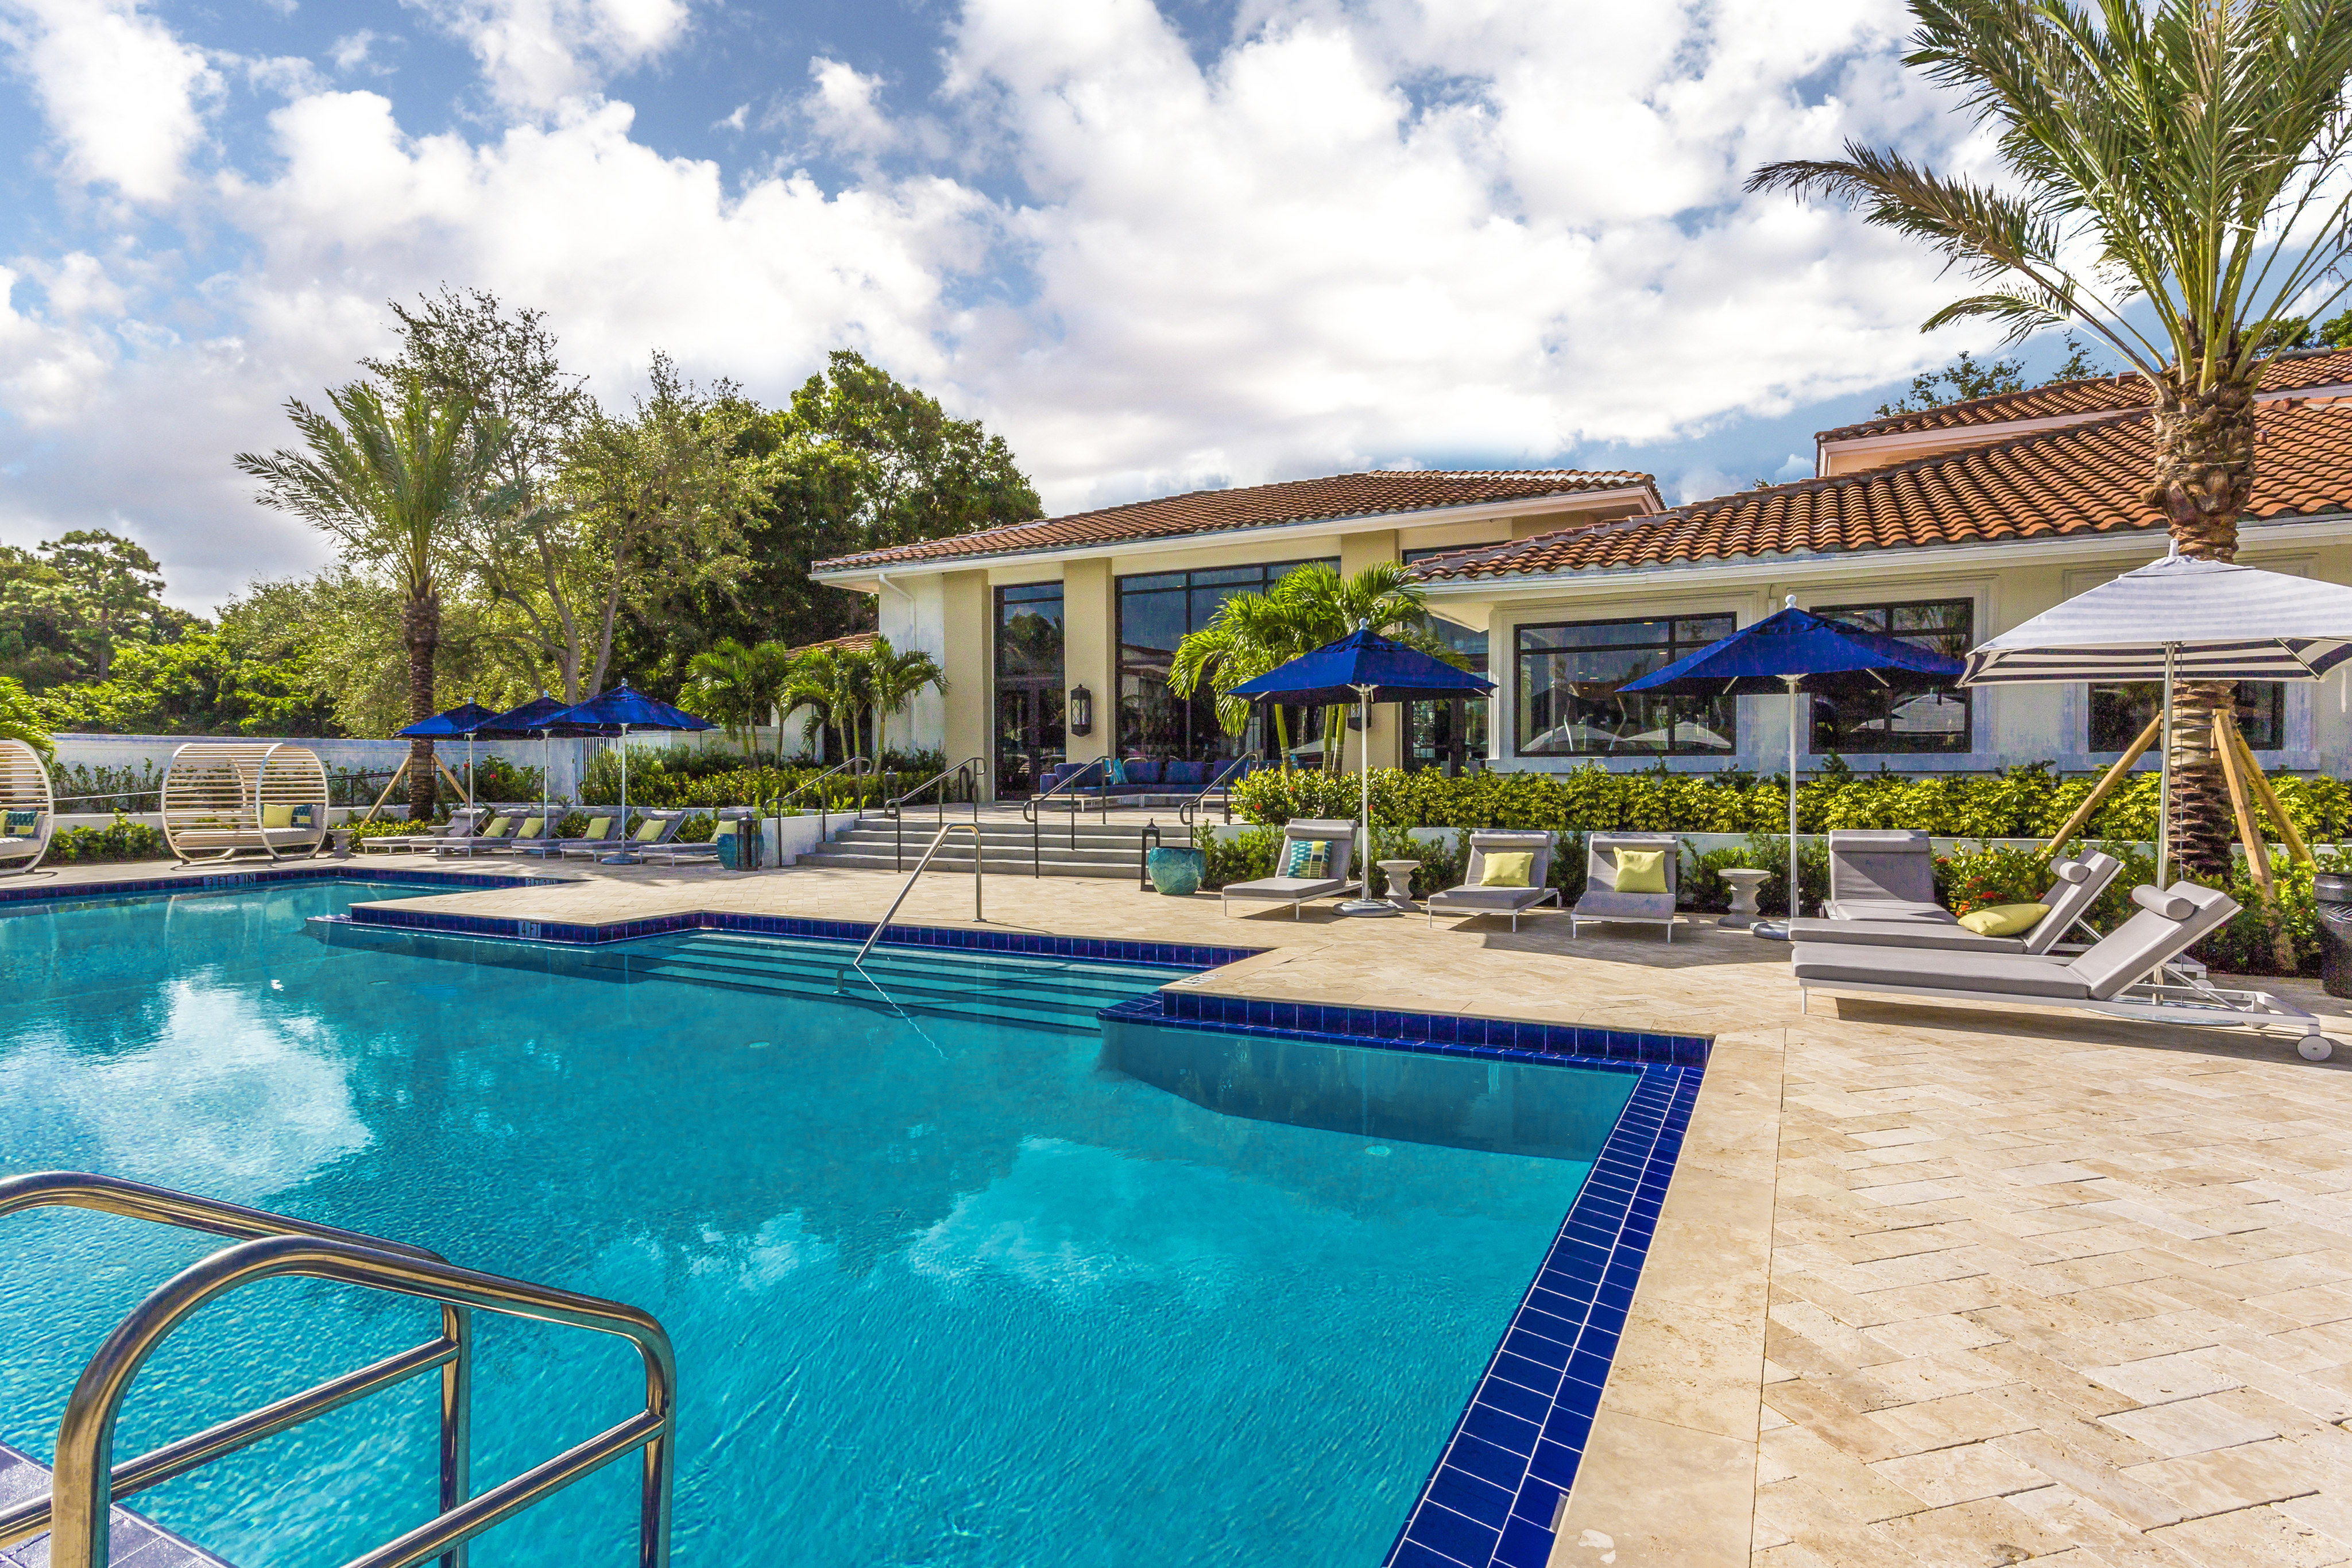 20 Best Apartments In Boca Raton, FL (with pictures)!